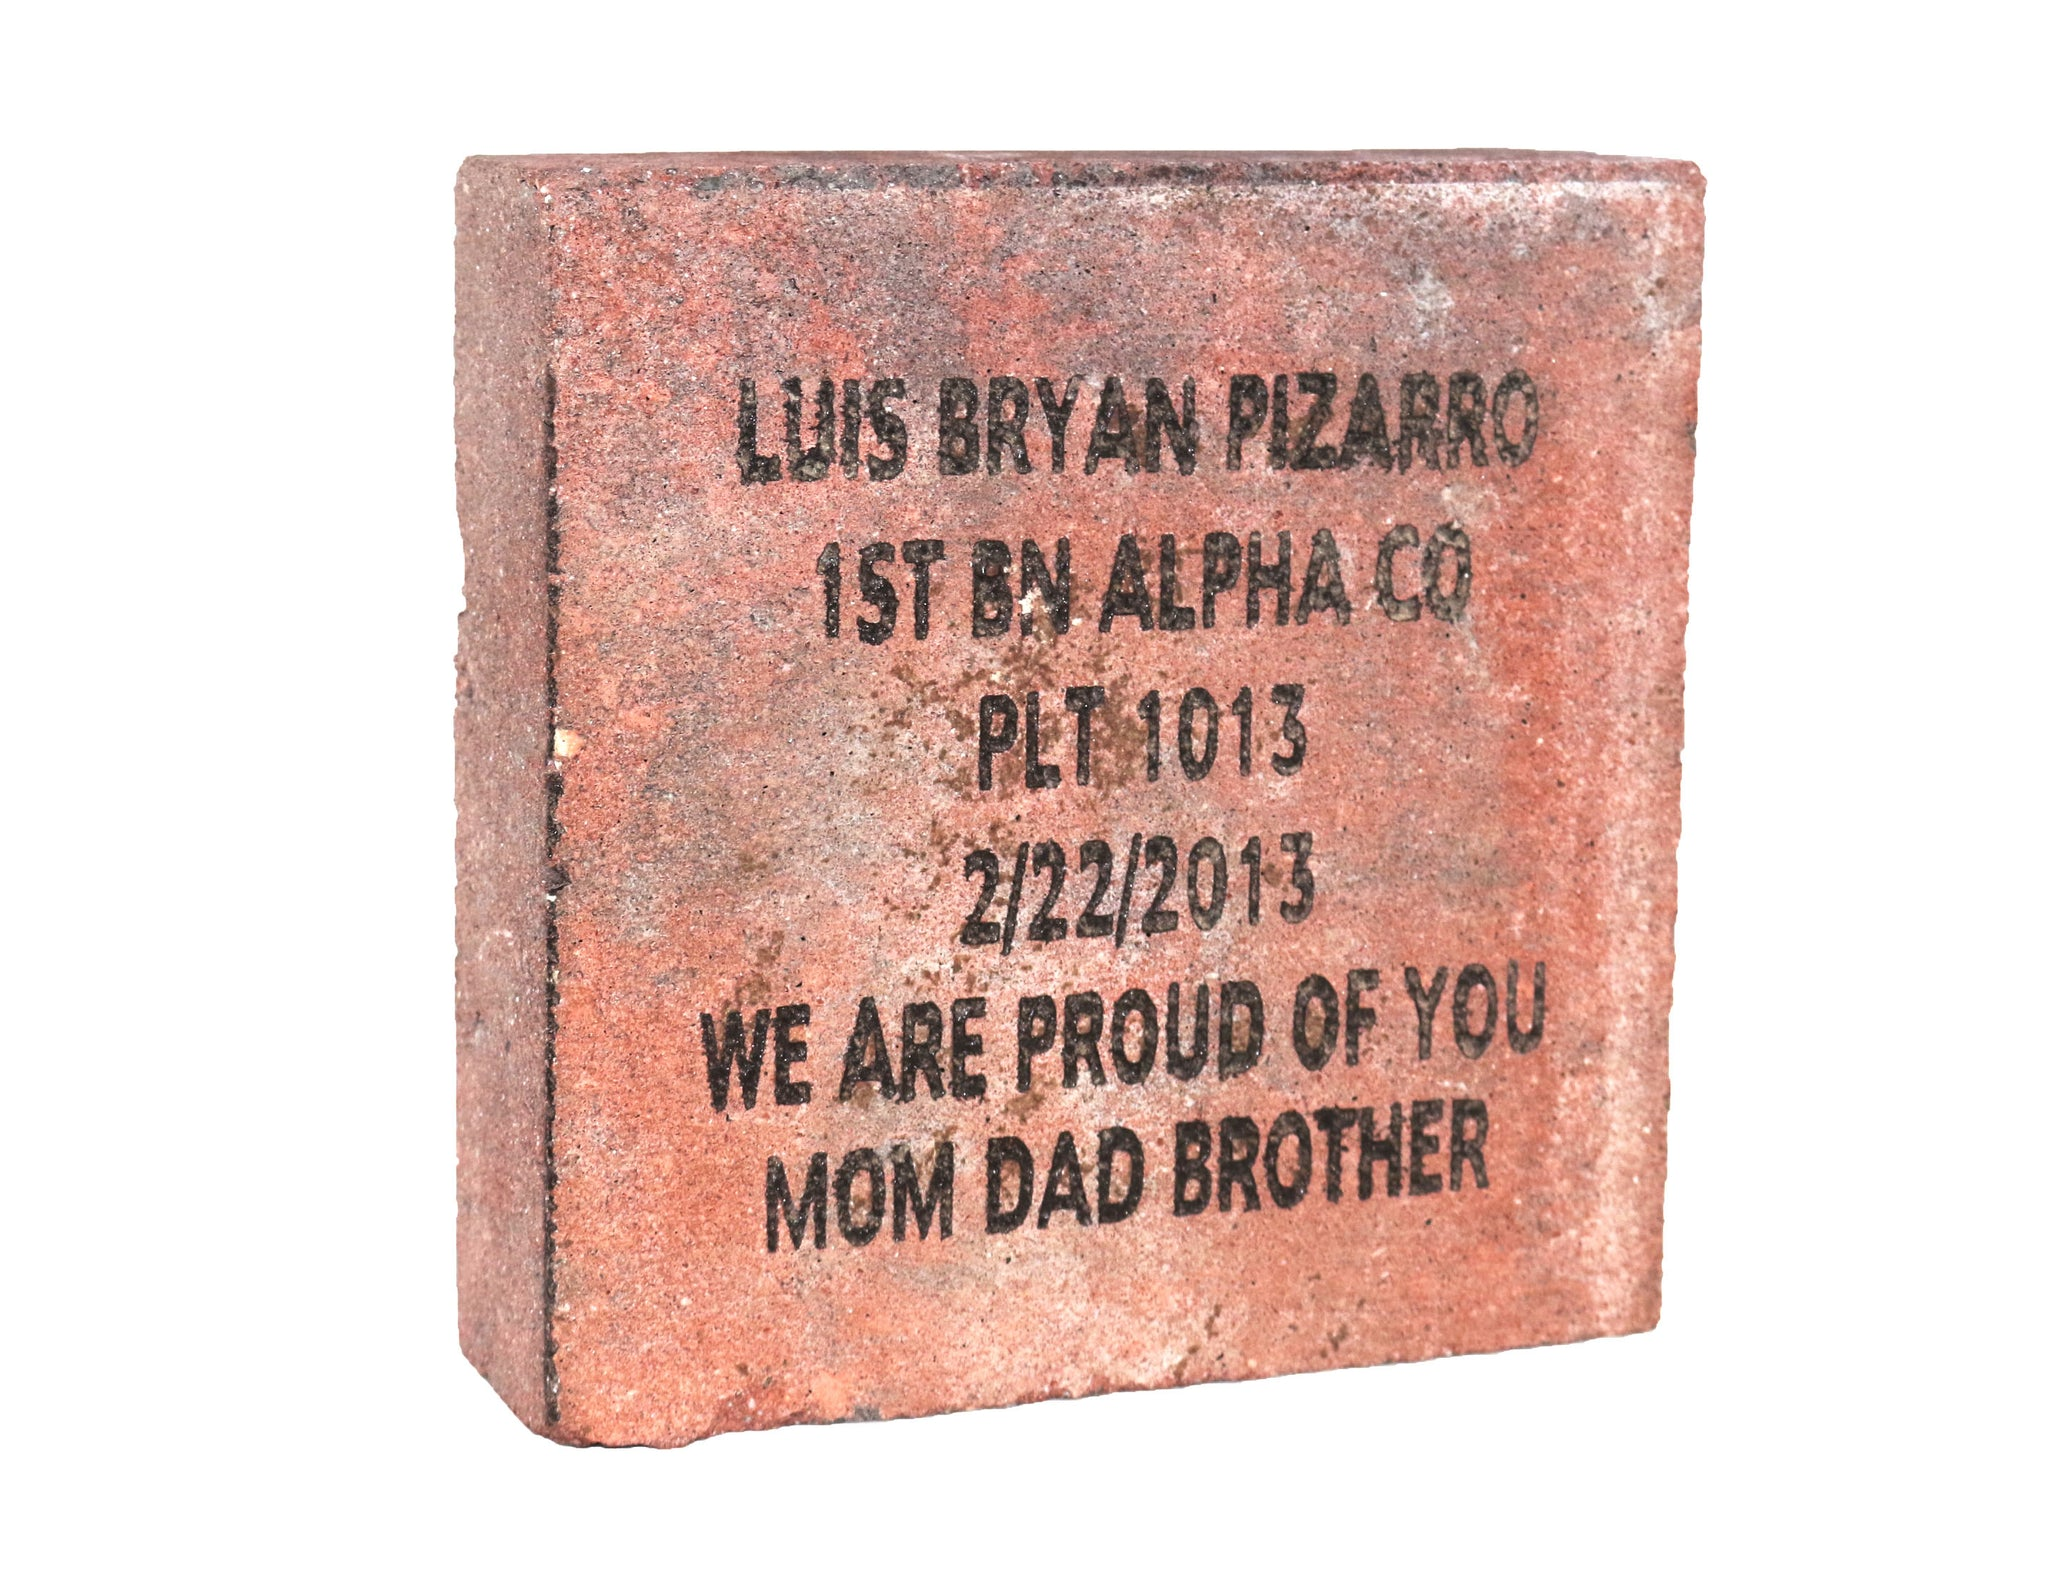 8X8 Commemorative Brick